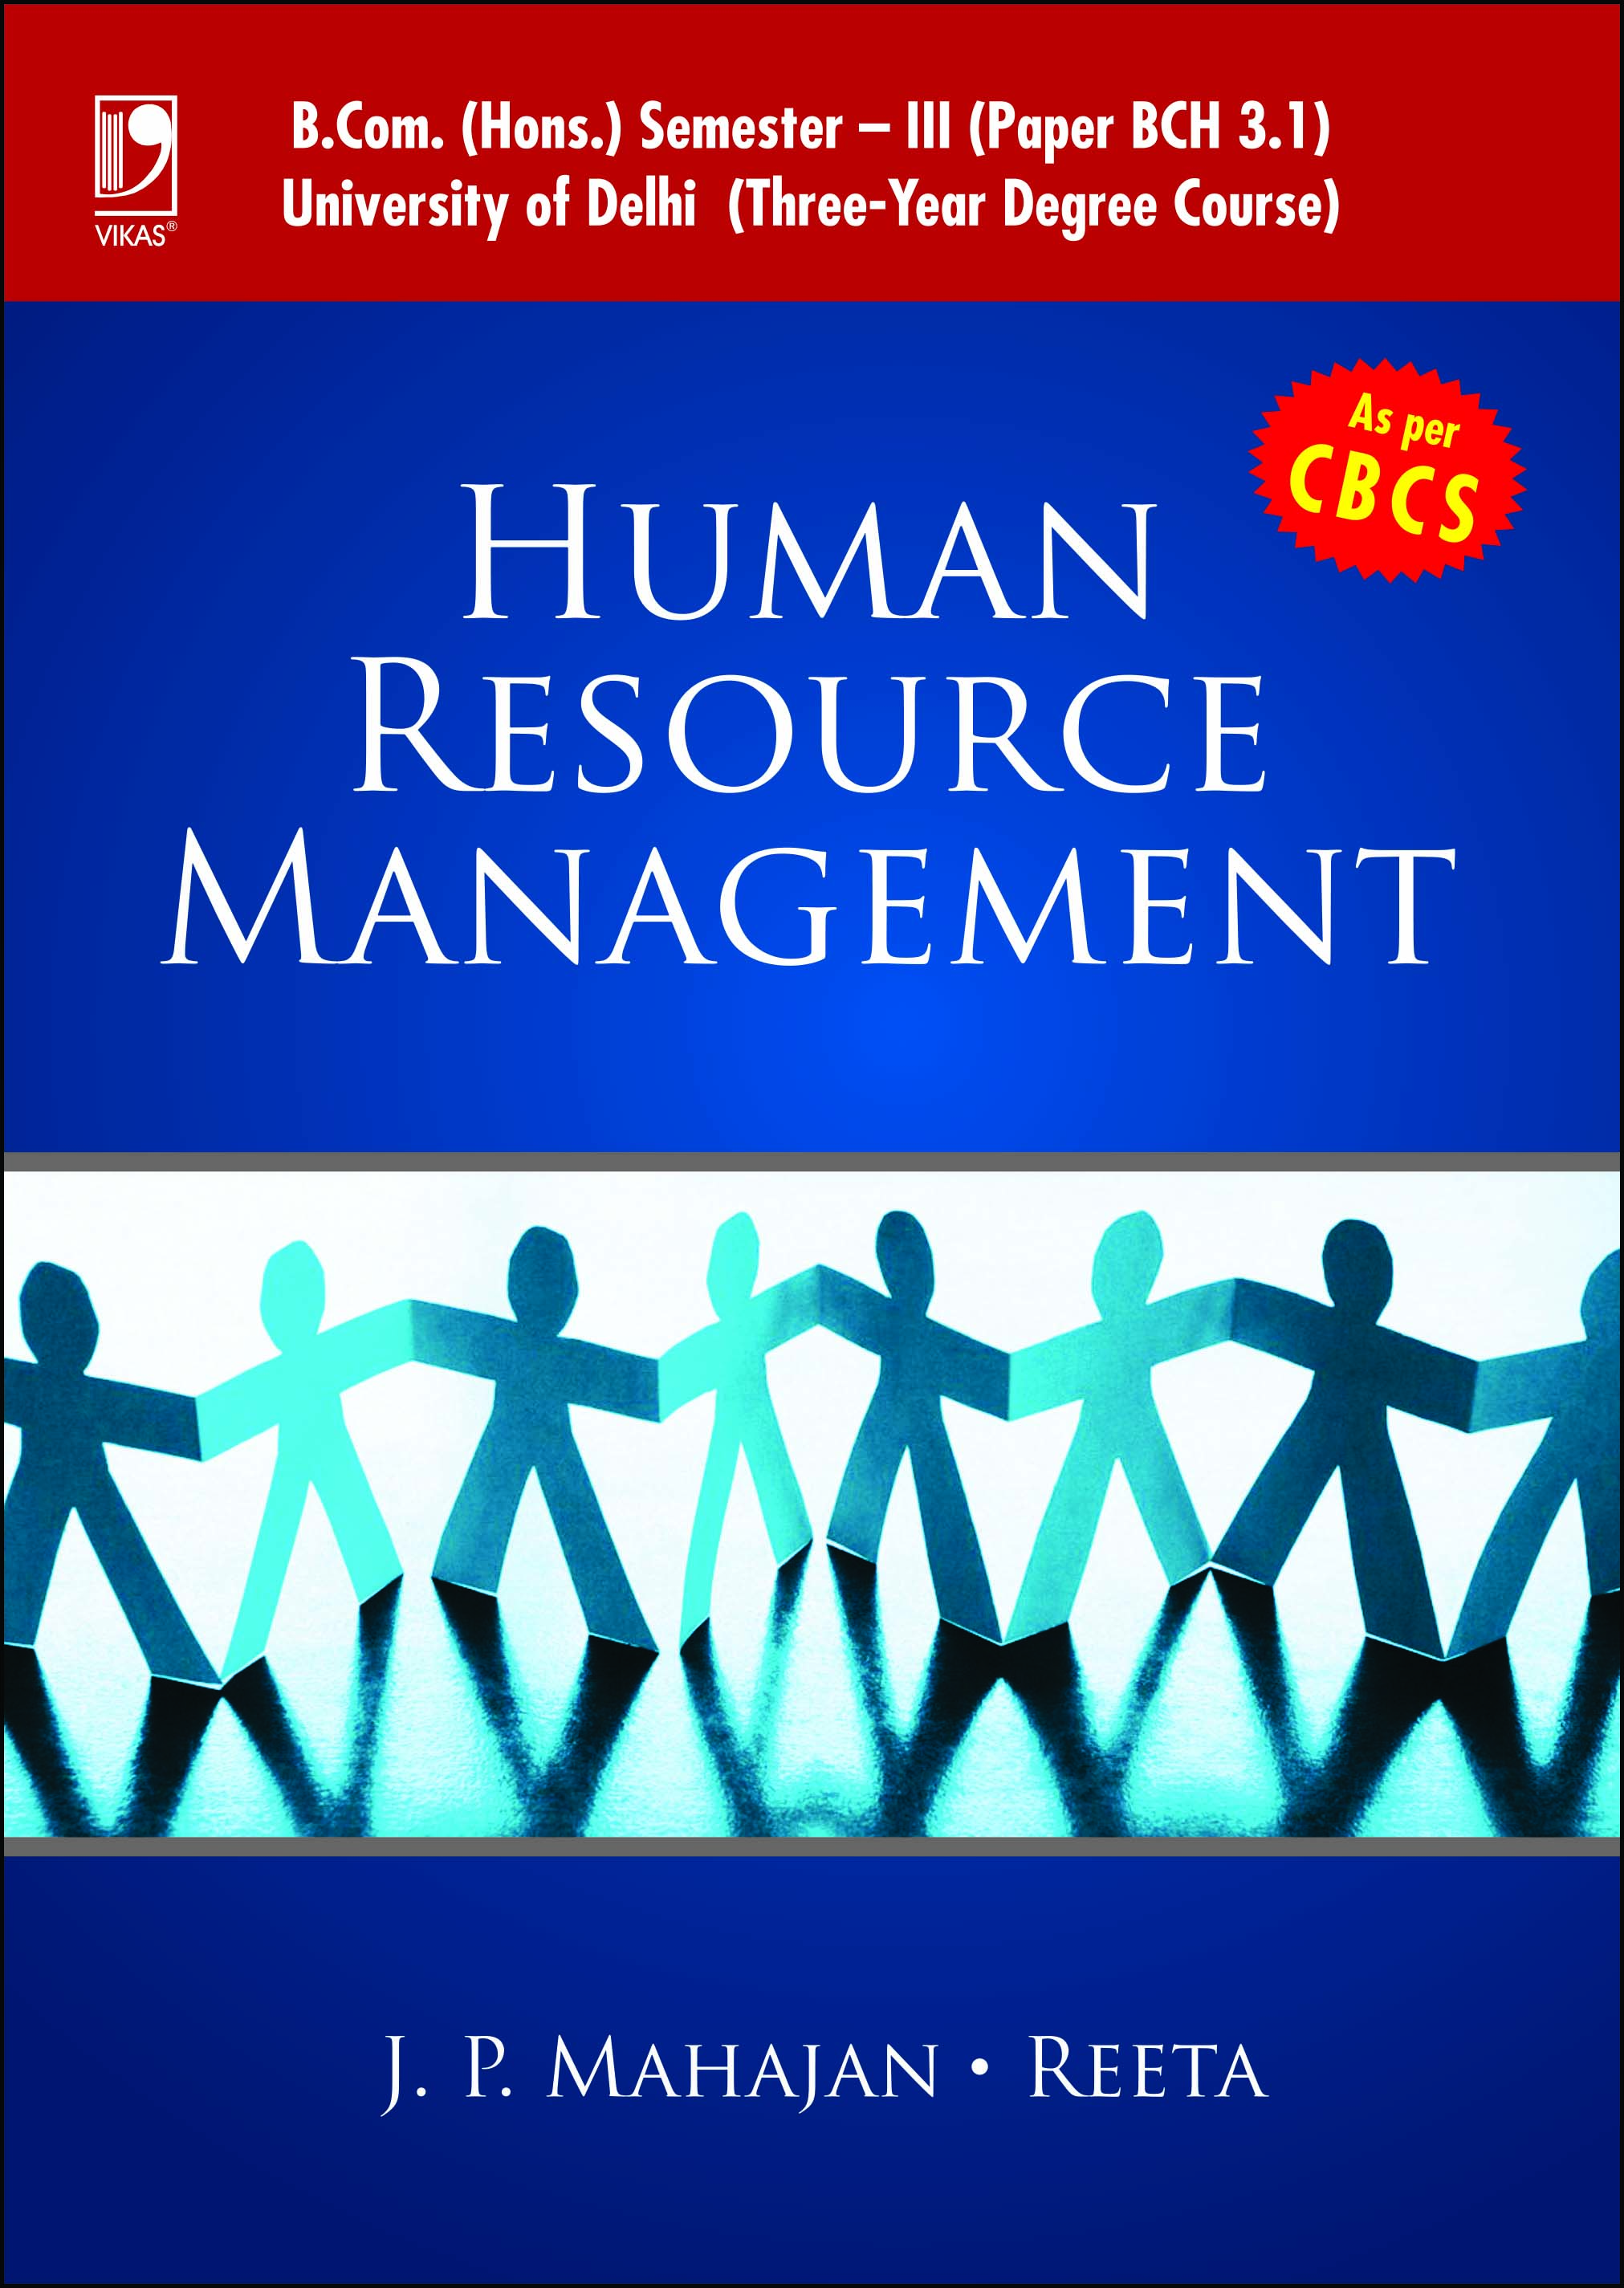 HUMAN RESOURCE MANAGEMENT: (FOR B.COM, SEM.-3, DELHI UNIVERSITY, AS PER CBCS) by  J P Mahajan